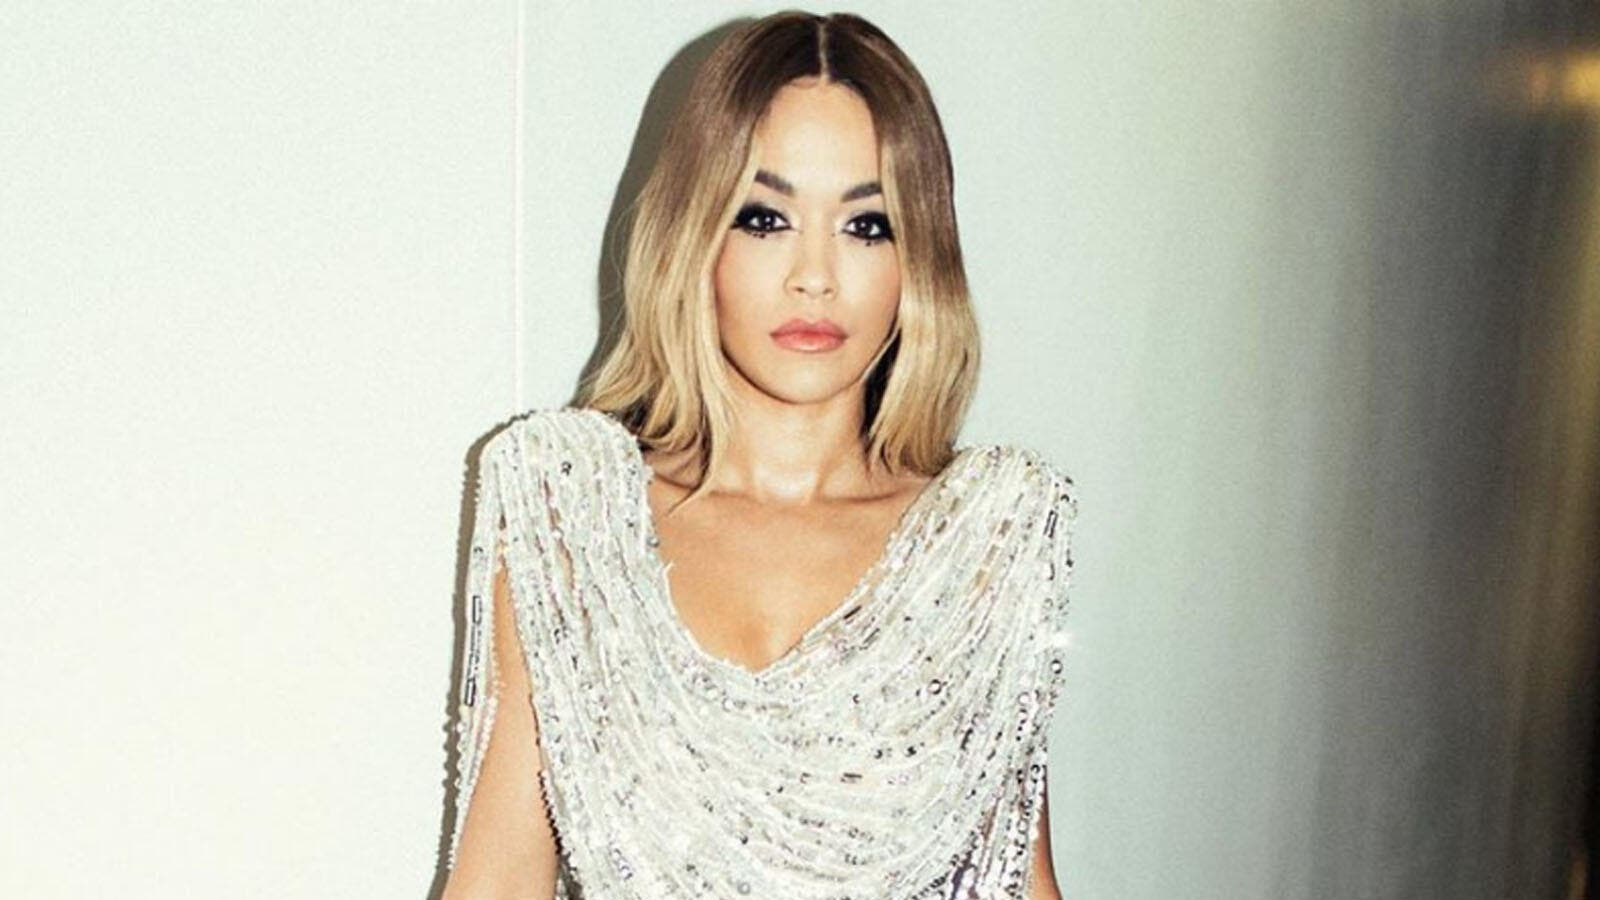 Rita Ora 29th birthday timeline